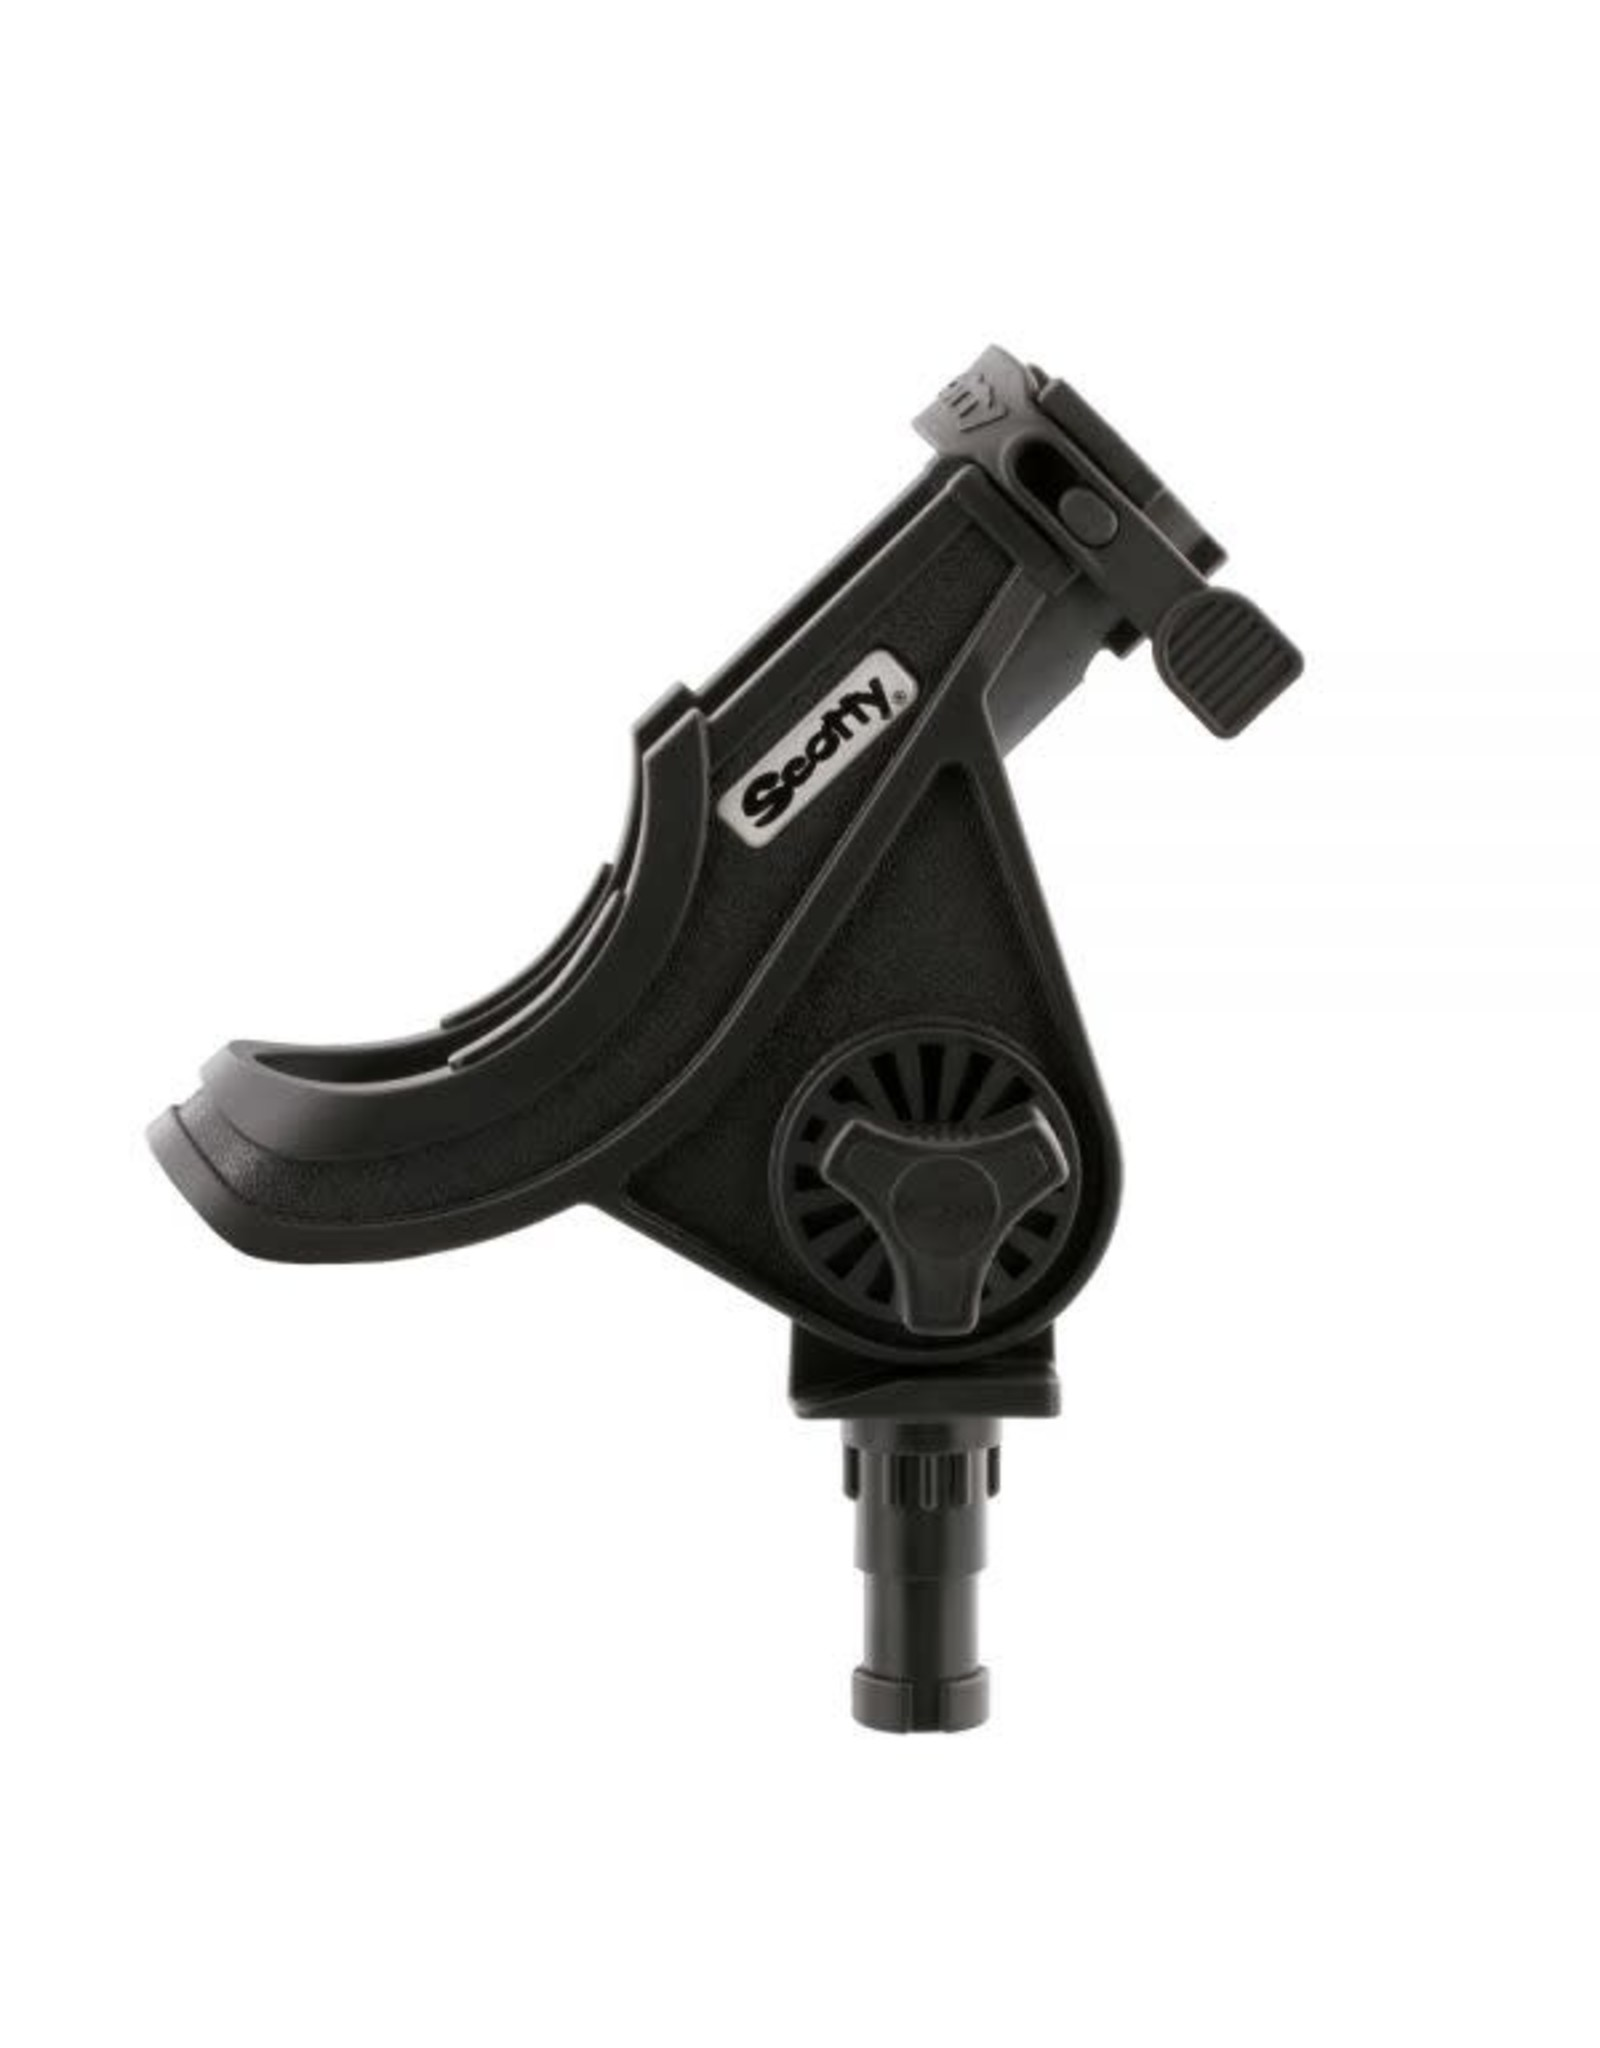 Scotty Scotty Baitcaster / Spinning Rod Holder, Without Mount